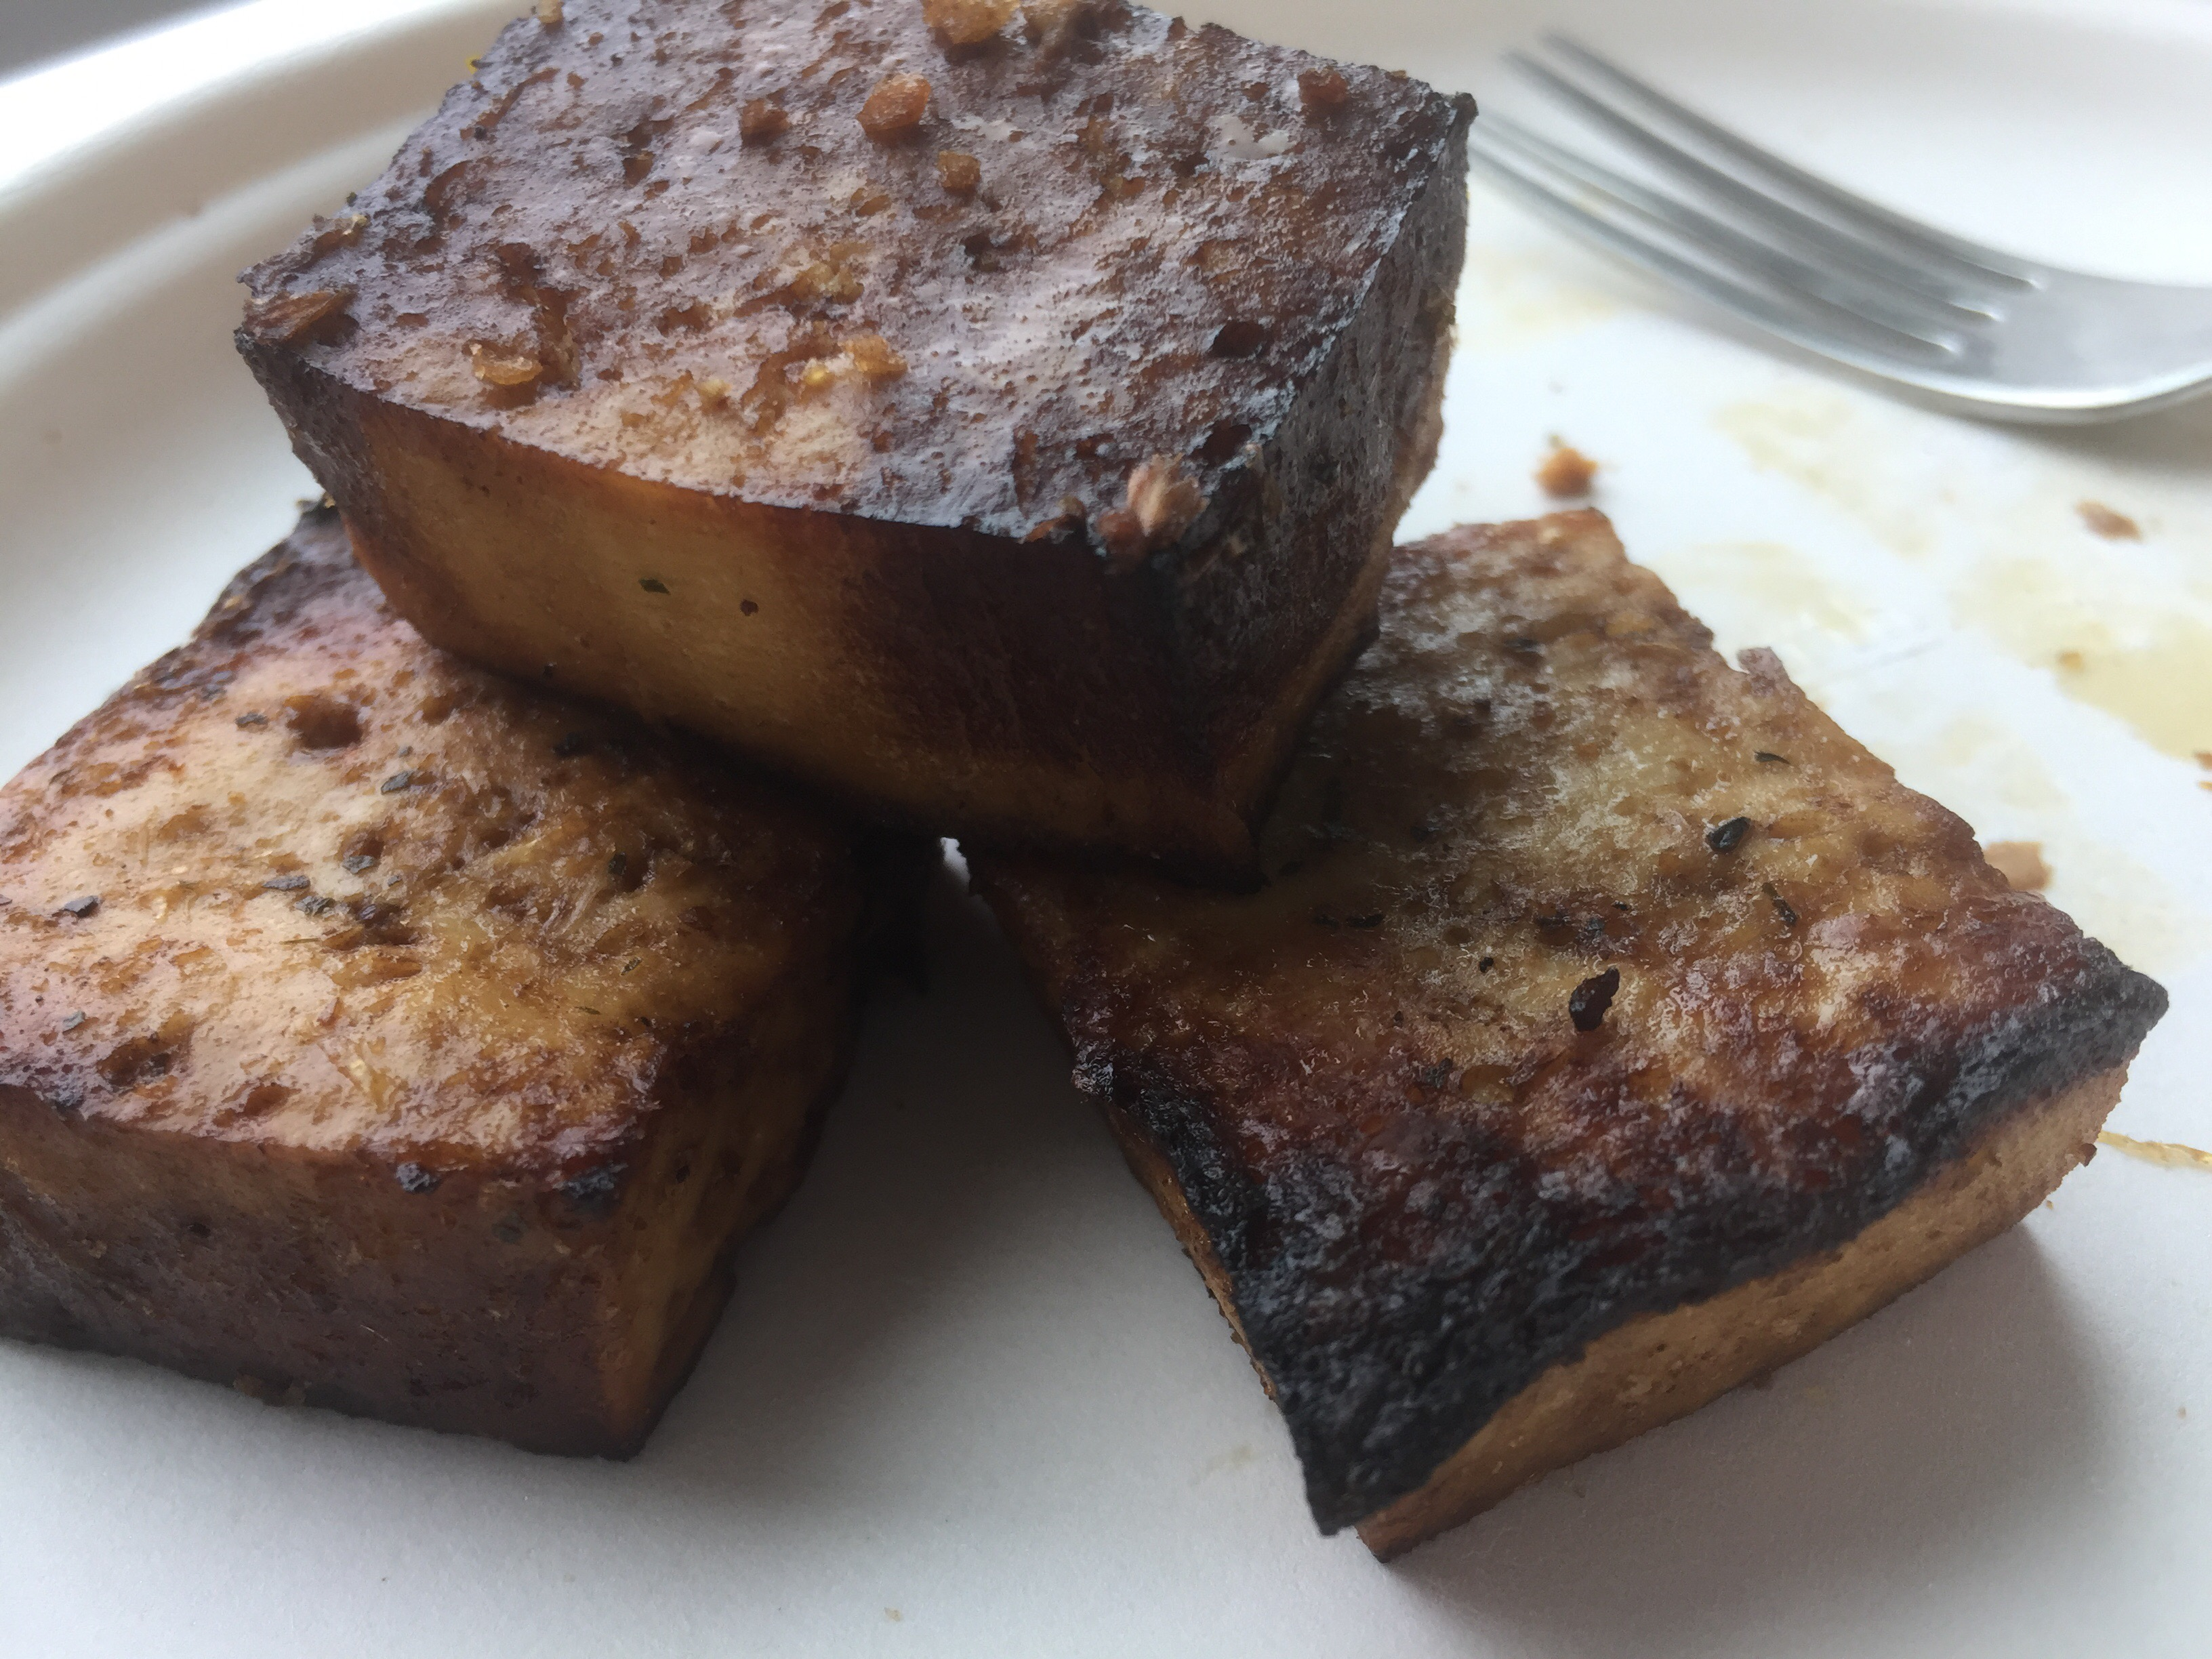 Beef steak tips are tough and chewy, and slightly annoying but these tofu steak tips will have you asking for more!